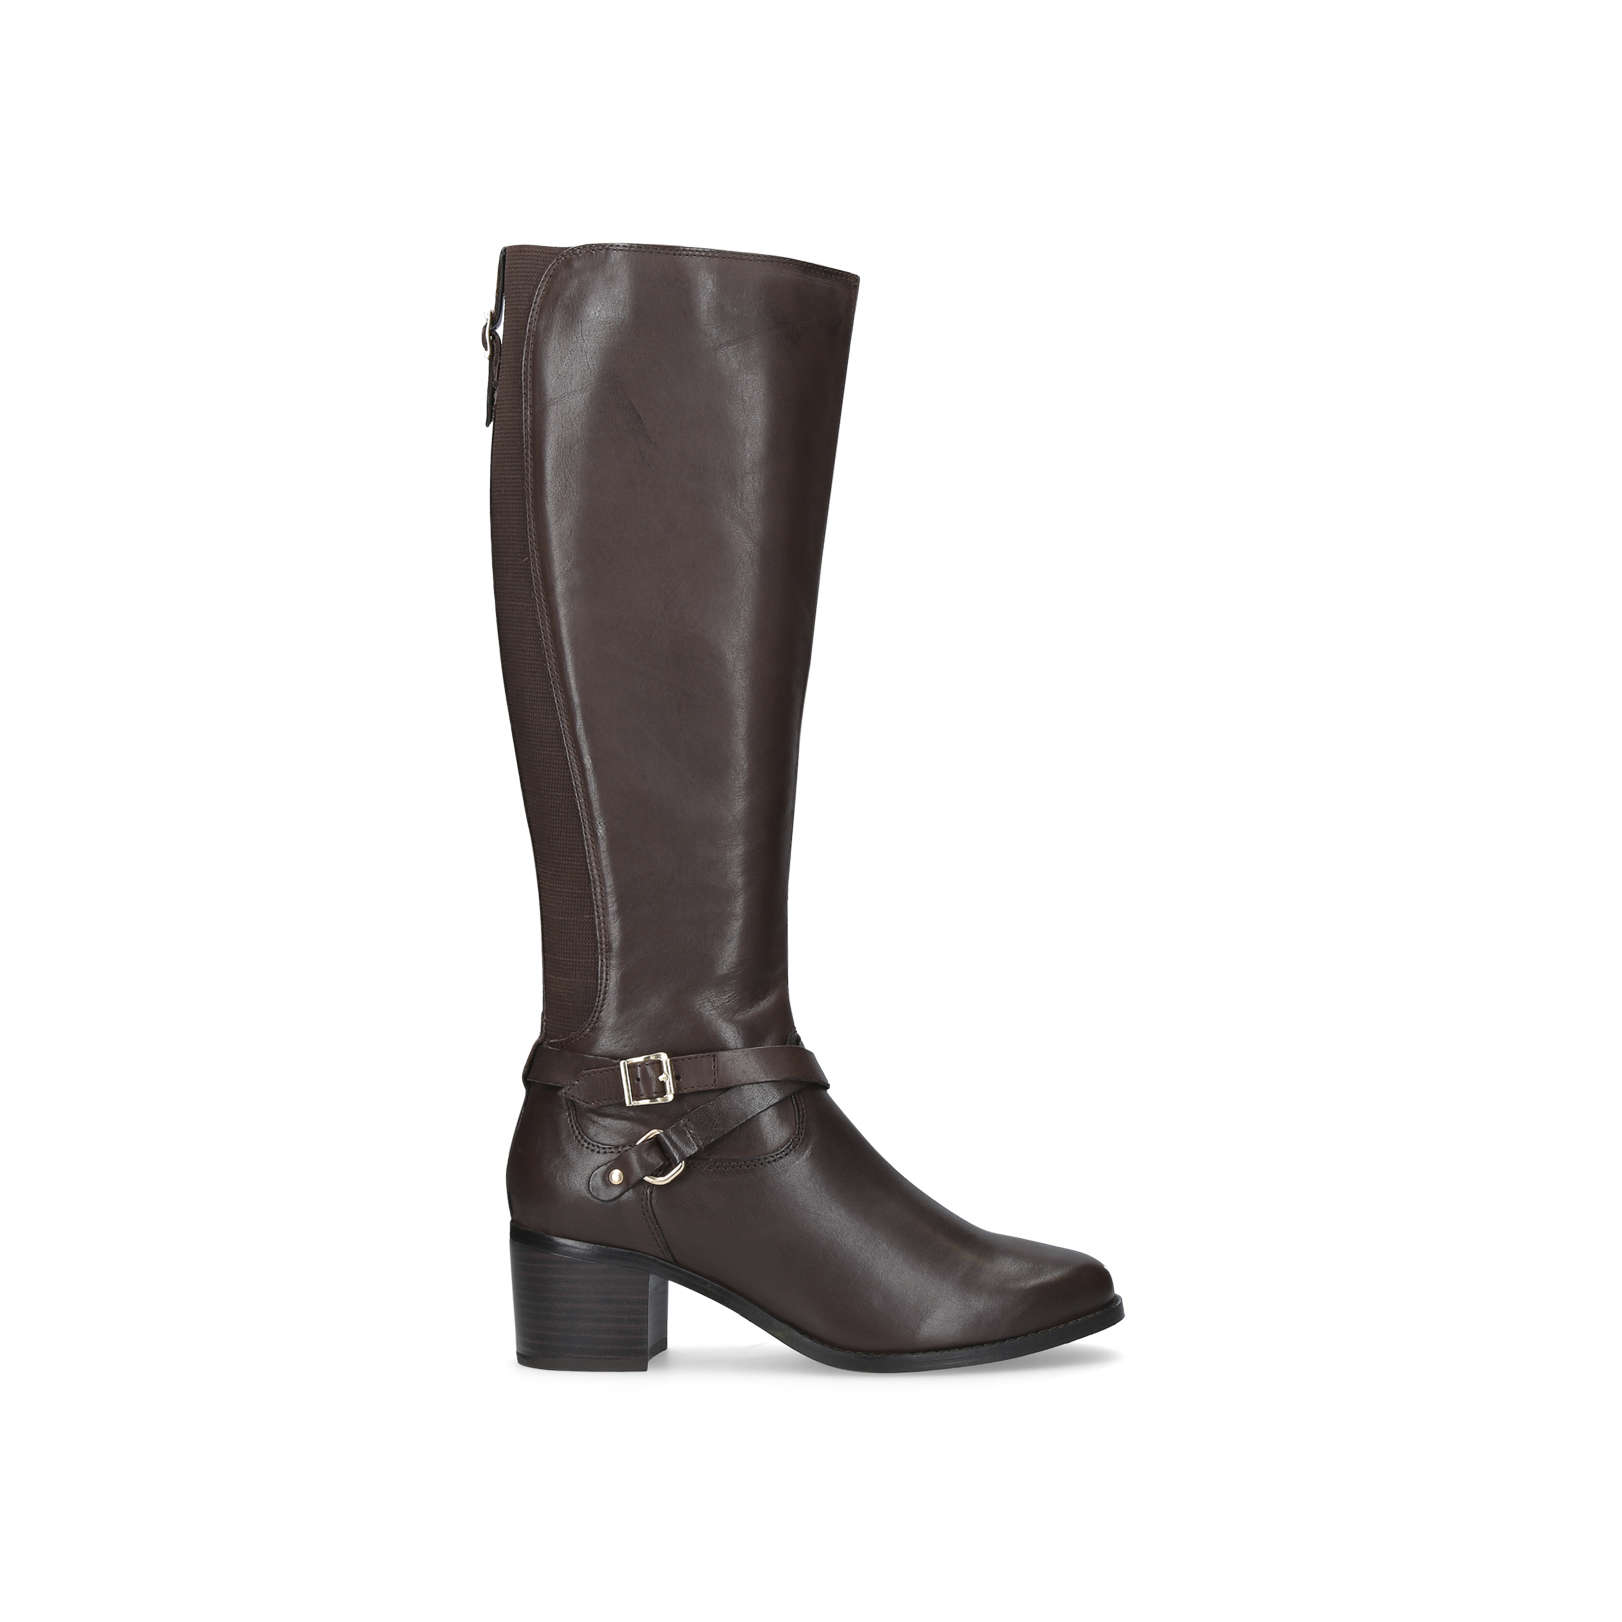 36d6f56d9ec RALEIGH Nine West Raleigh Brown Leather High Leg Boots by NINE WEST